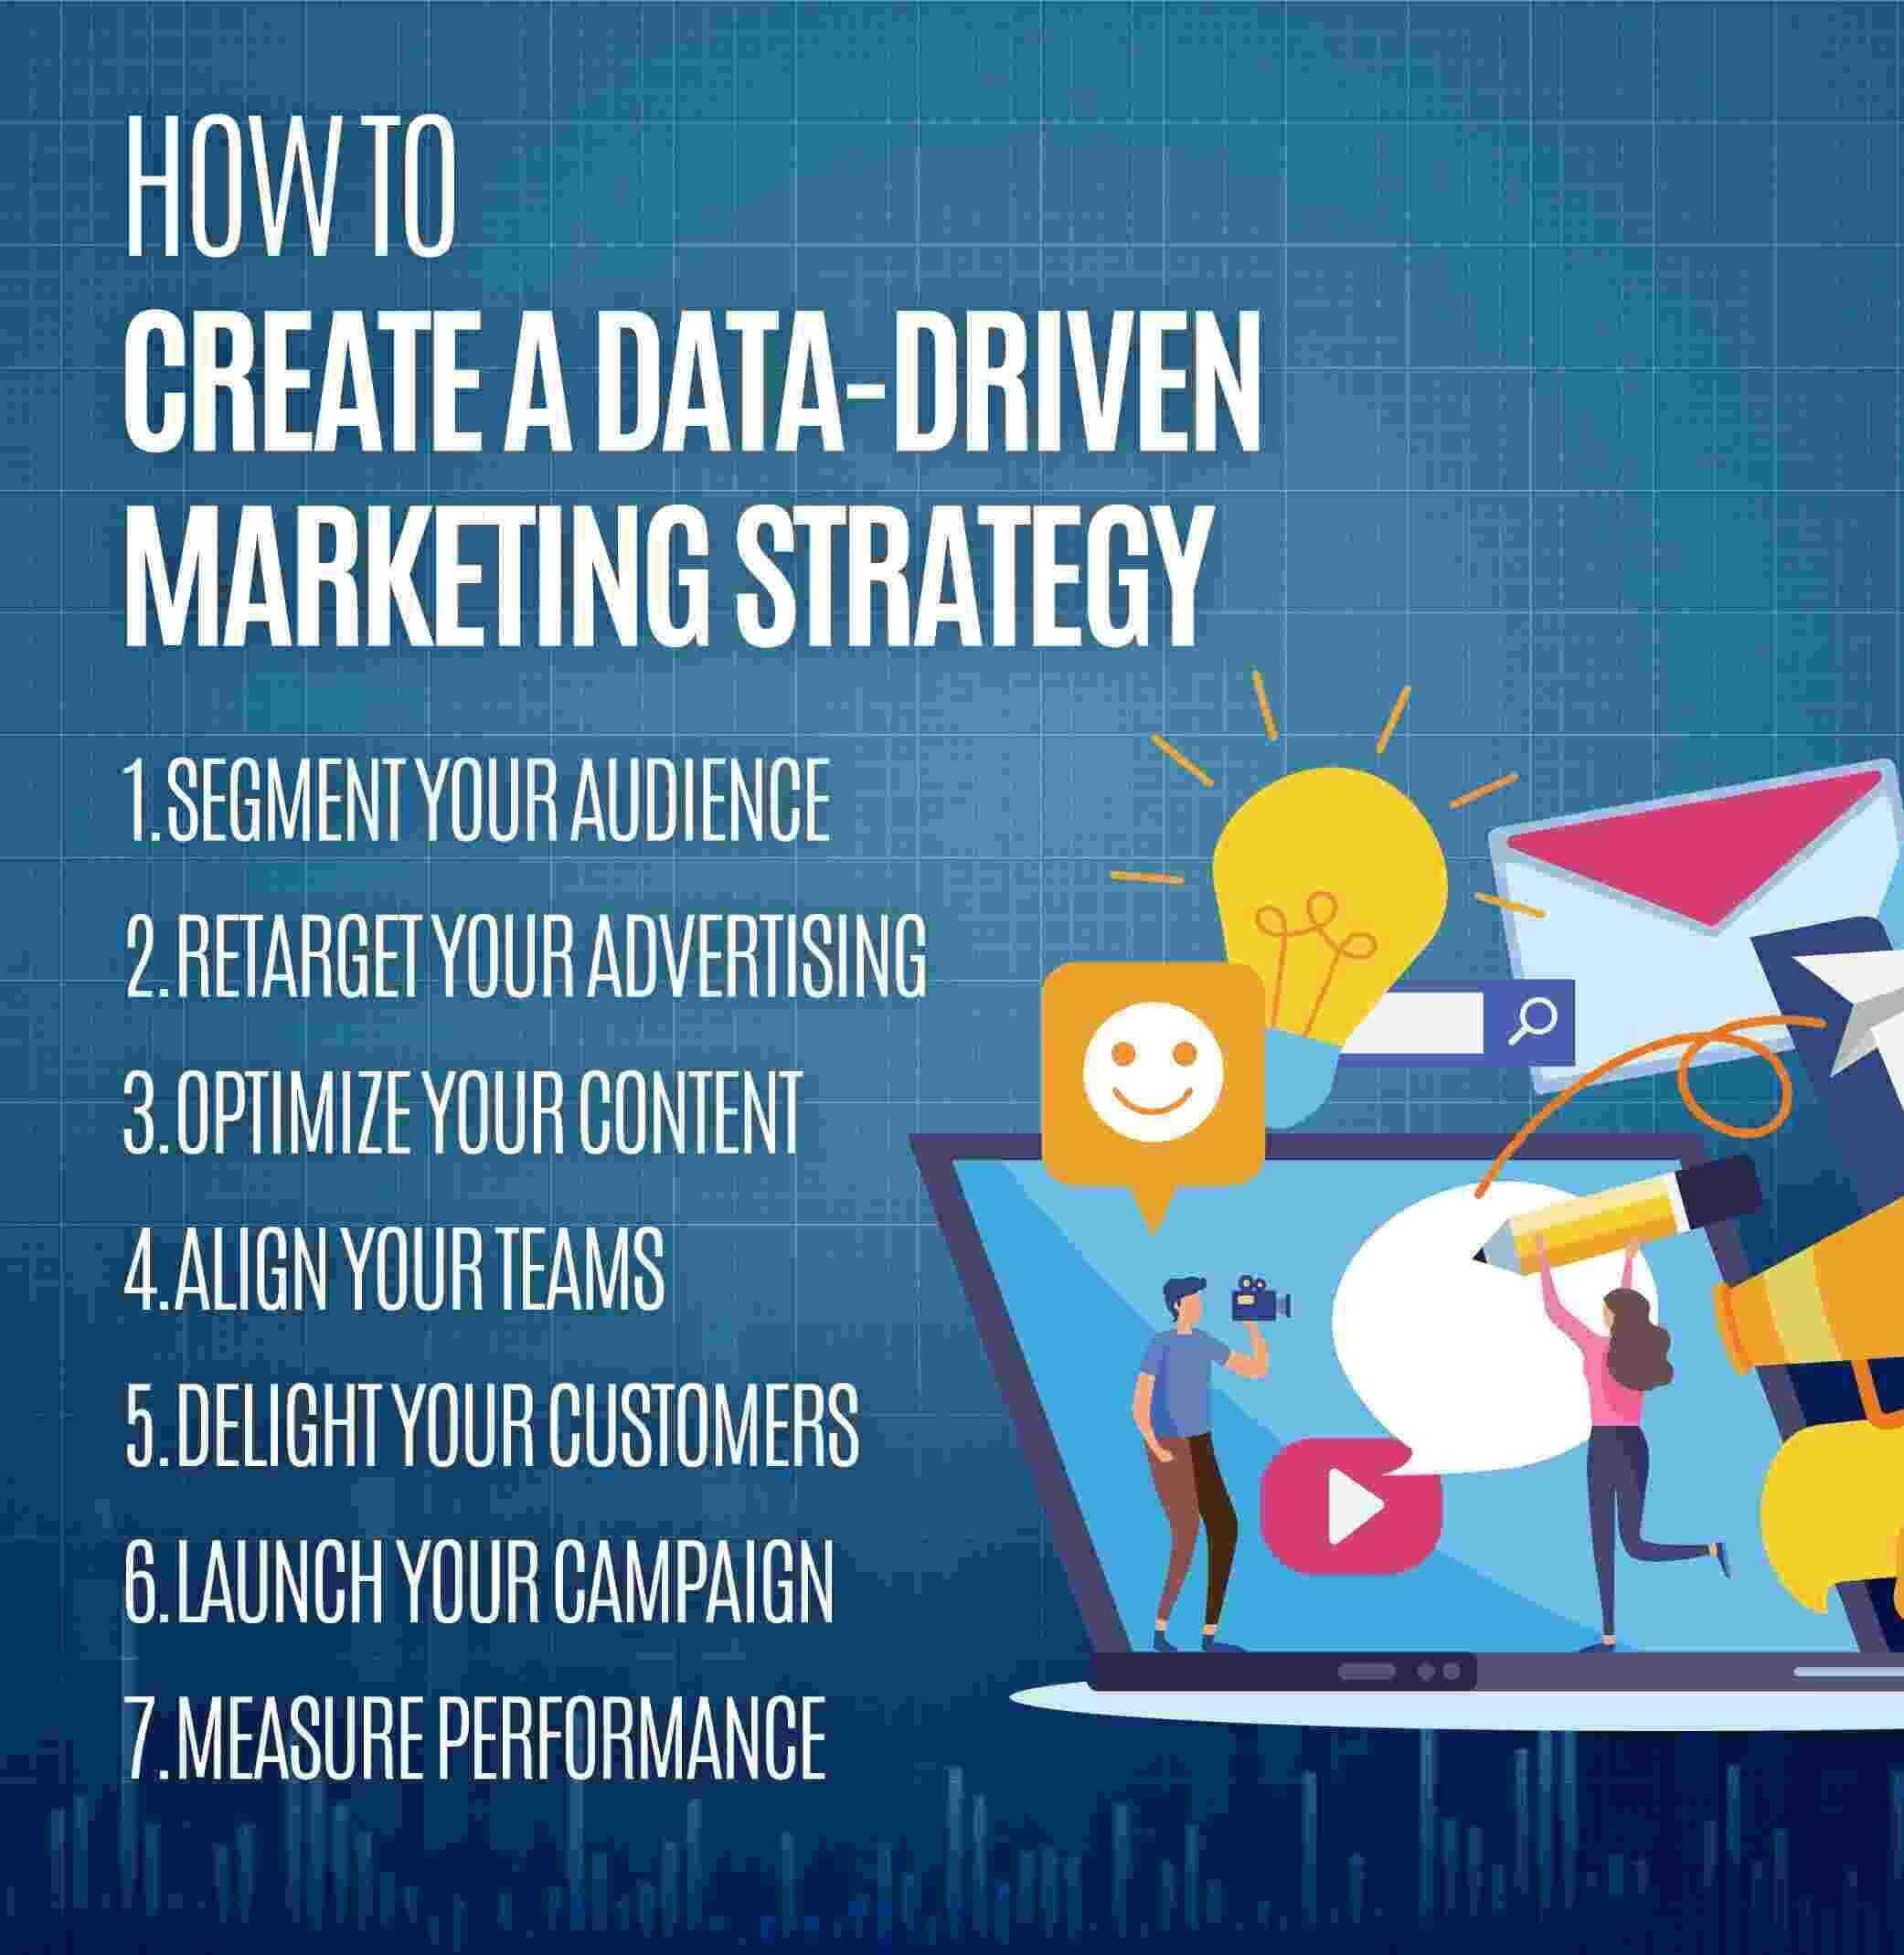 how to create data driven marketing startegy step by step